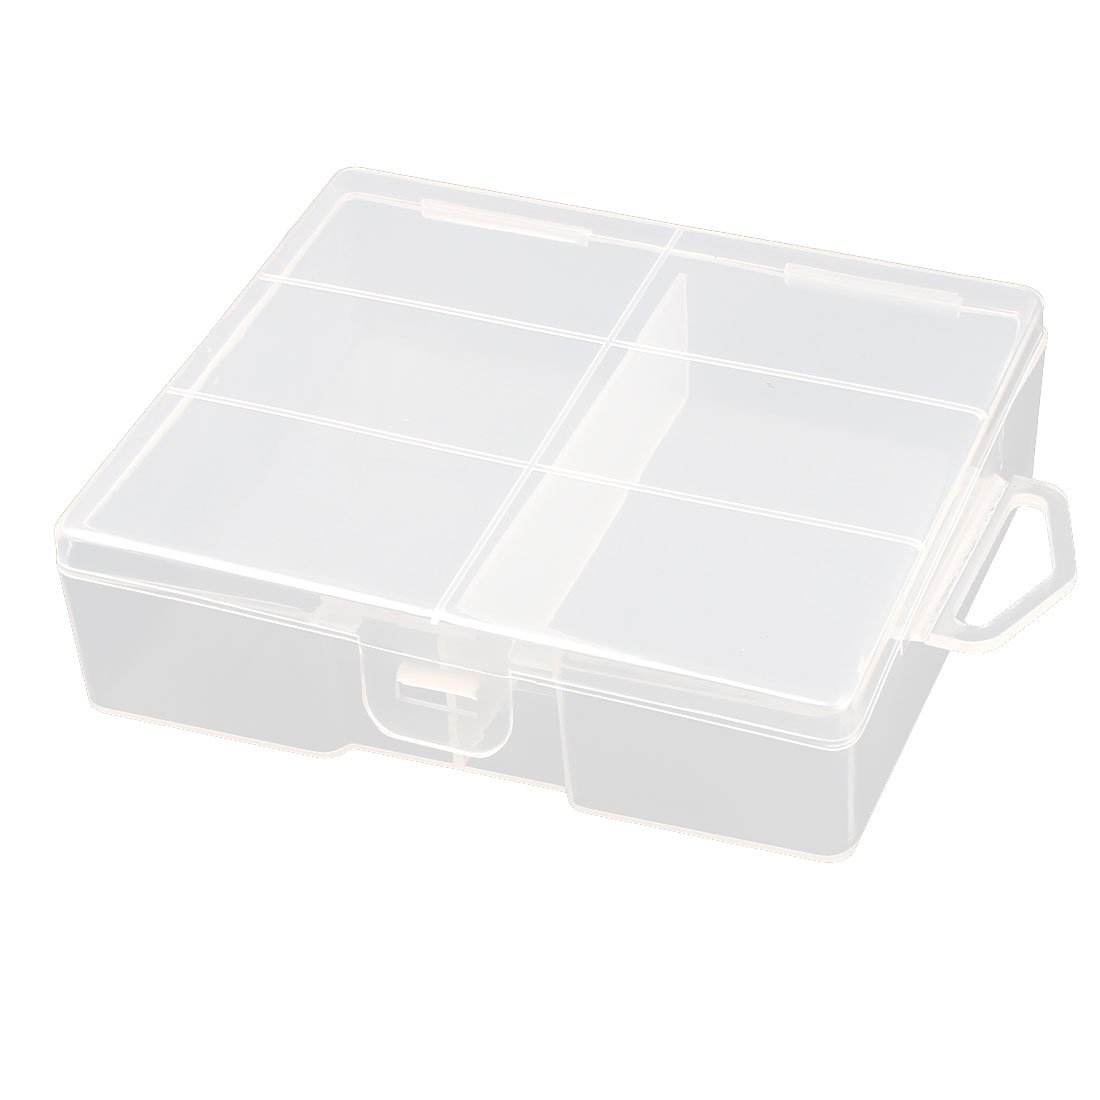 Hard Plastic Case Holder Storage Box Container for 24 x AA Battery